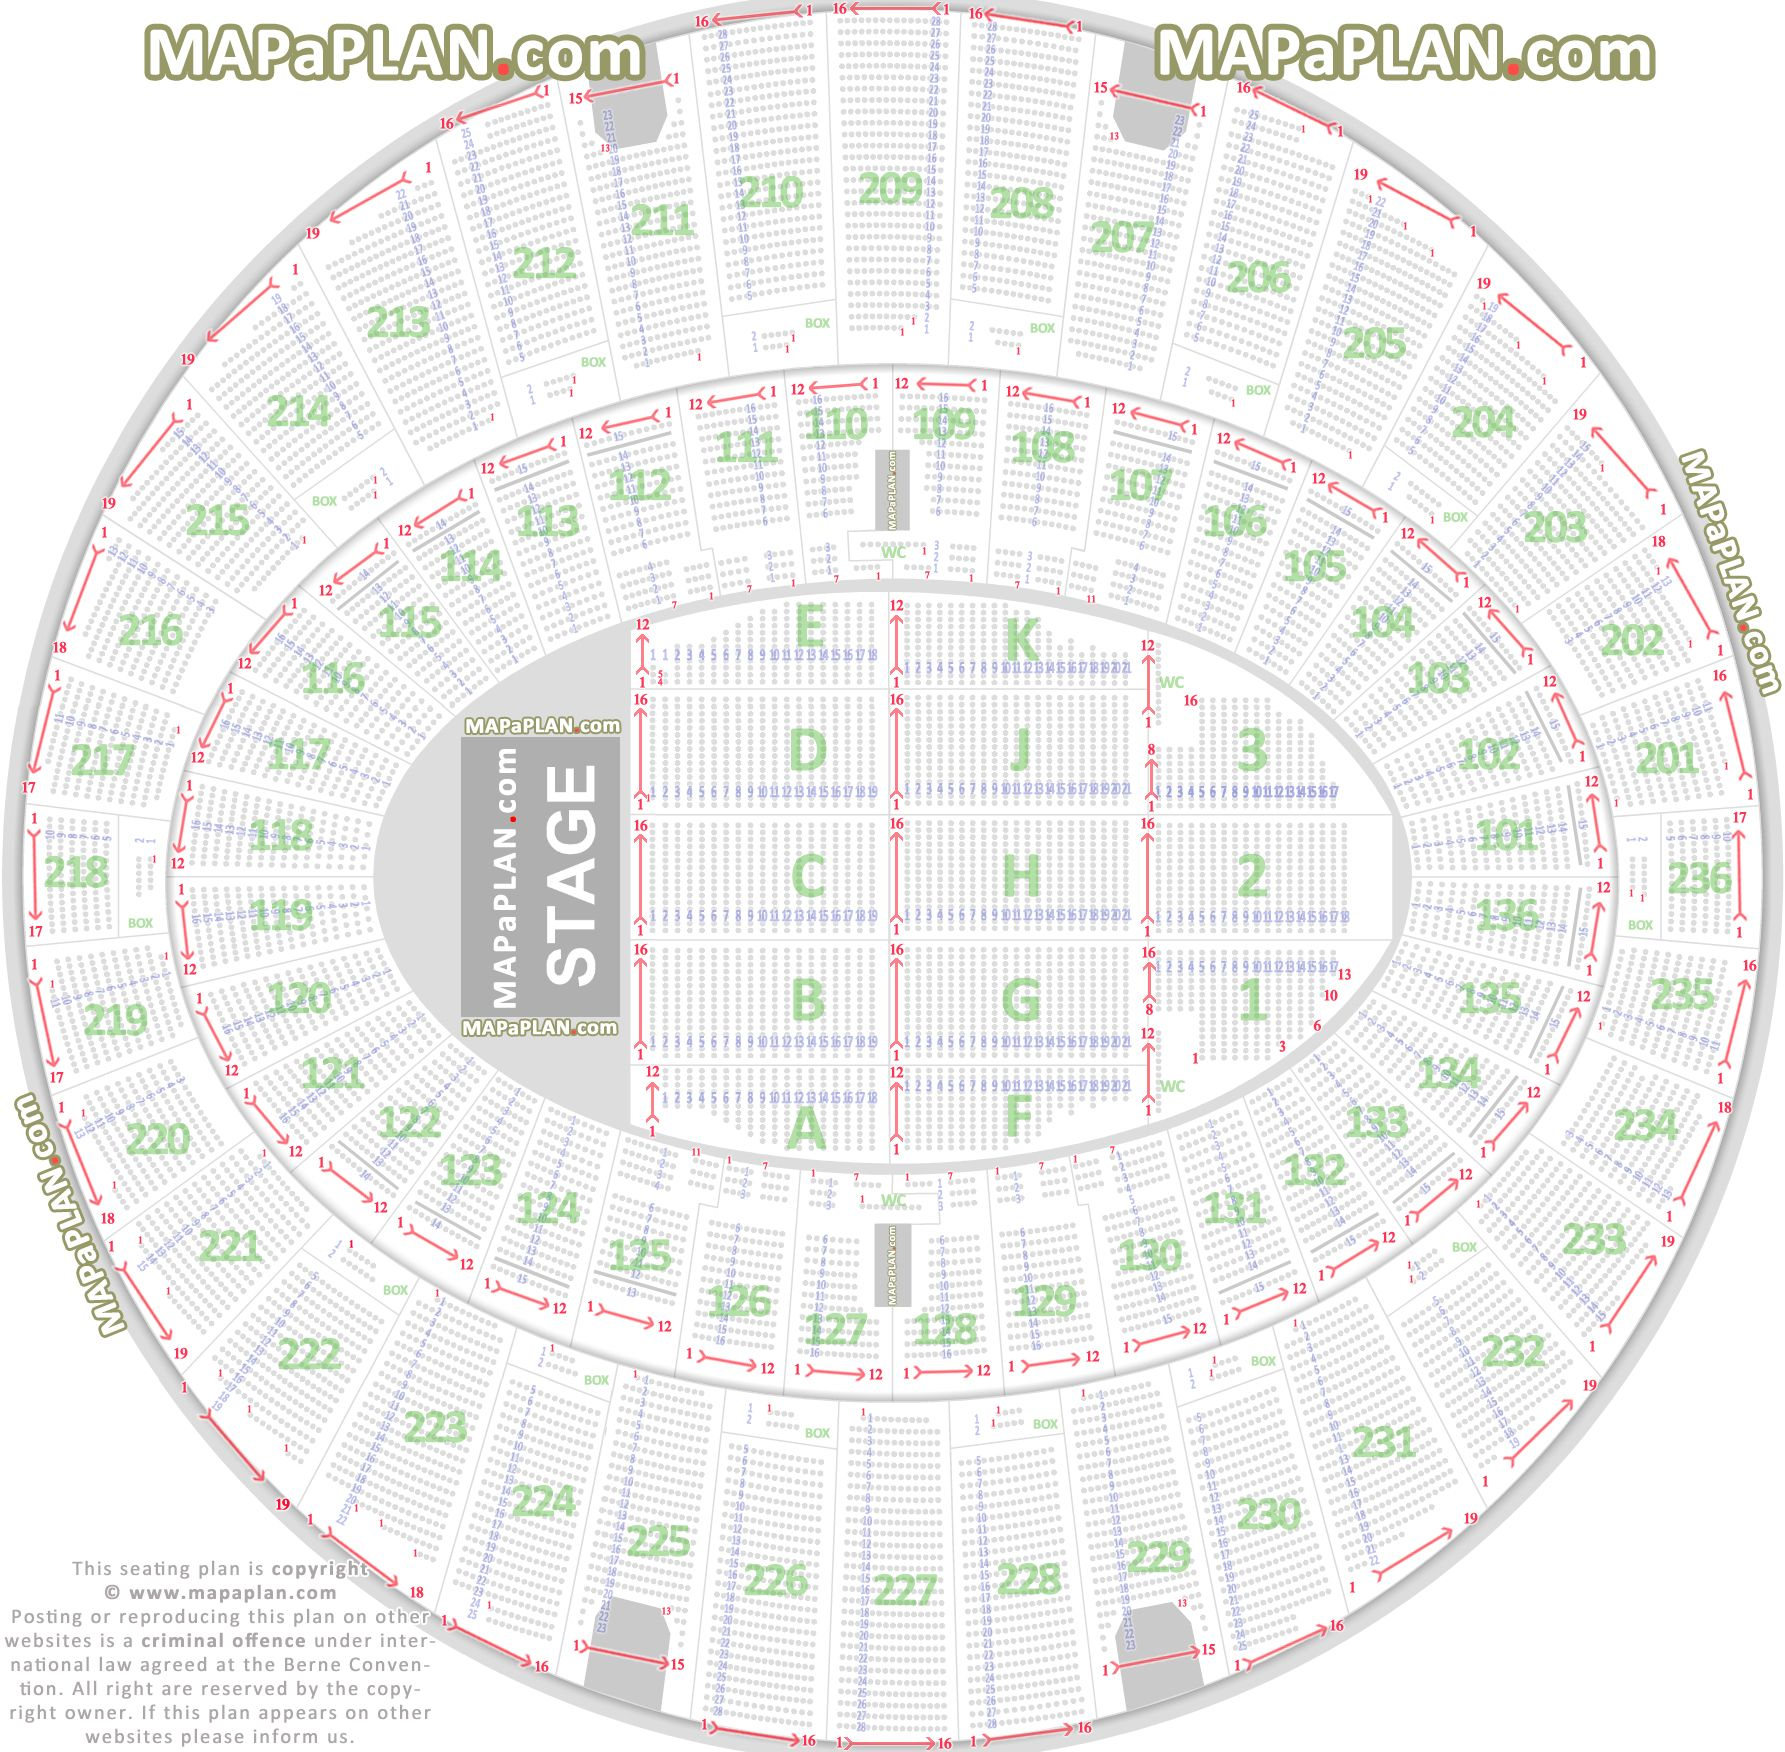 Detailed Seat Numbers Chart With Rows Sections Layout The Forum Inglewood Seating Plan Seating Charts Seating Plan Inglewood